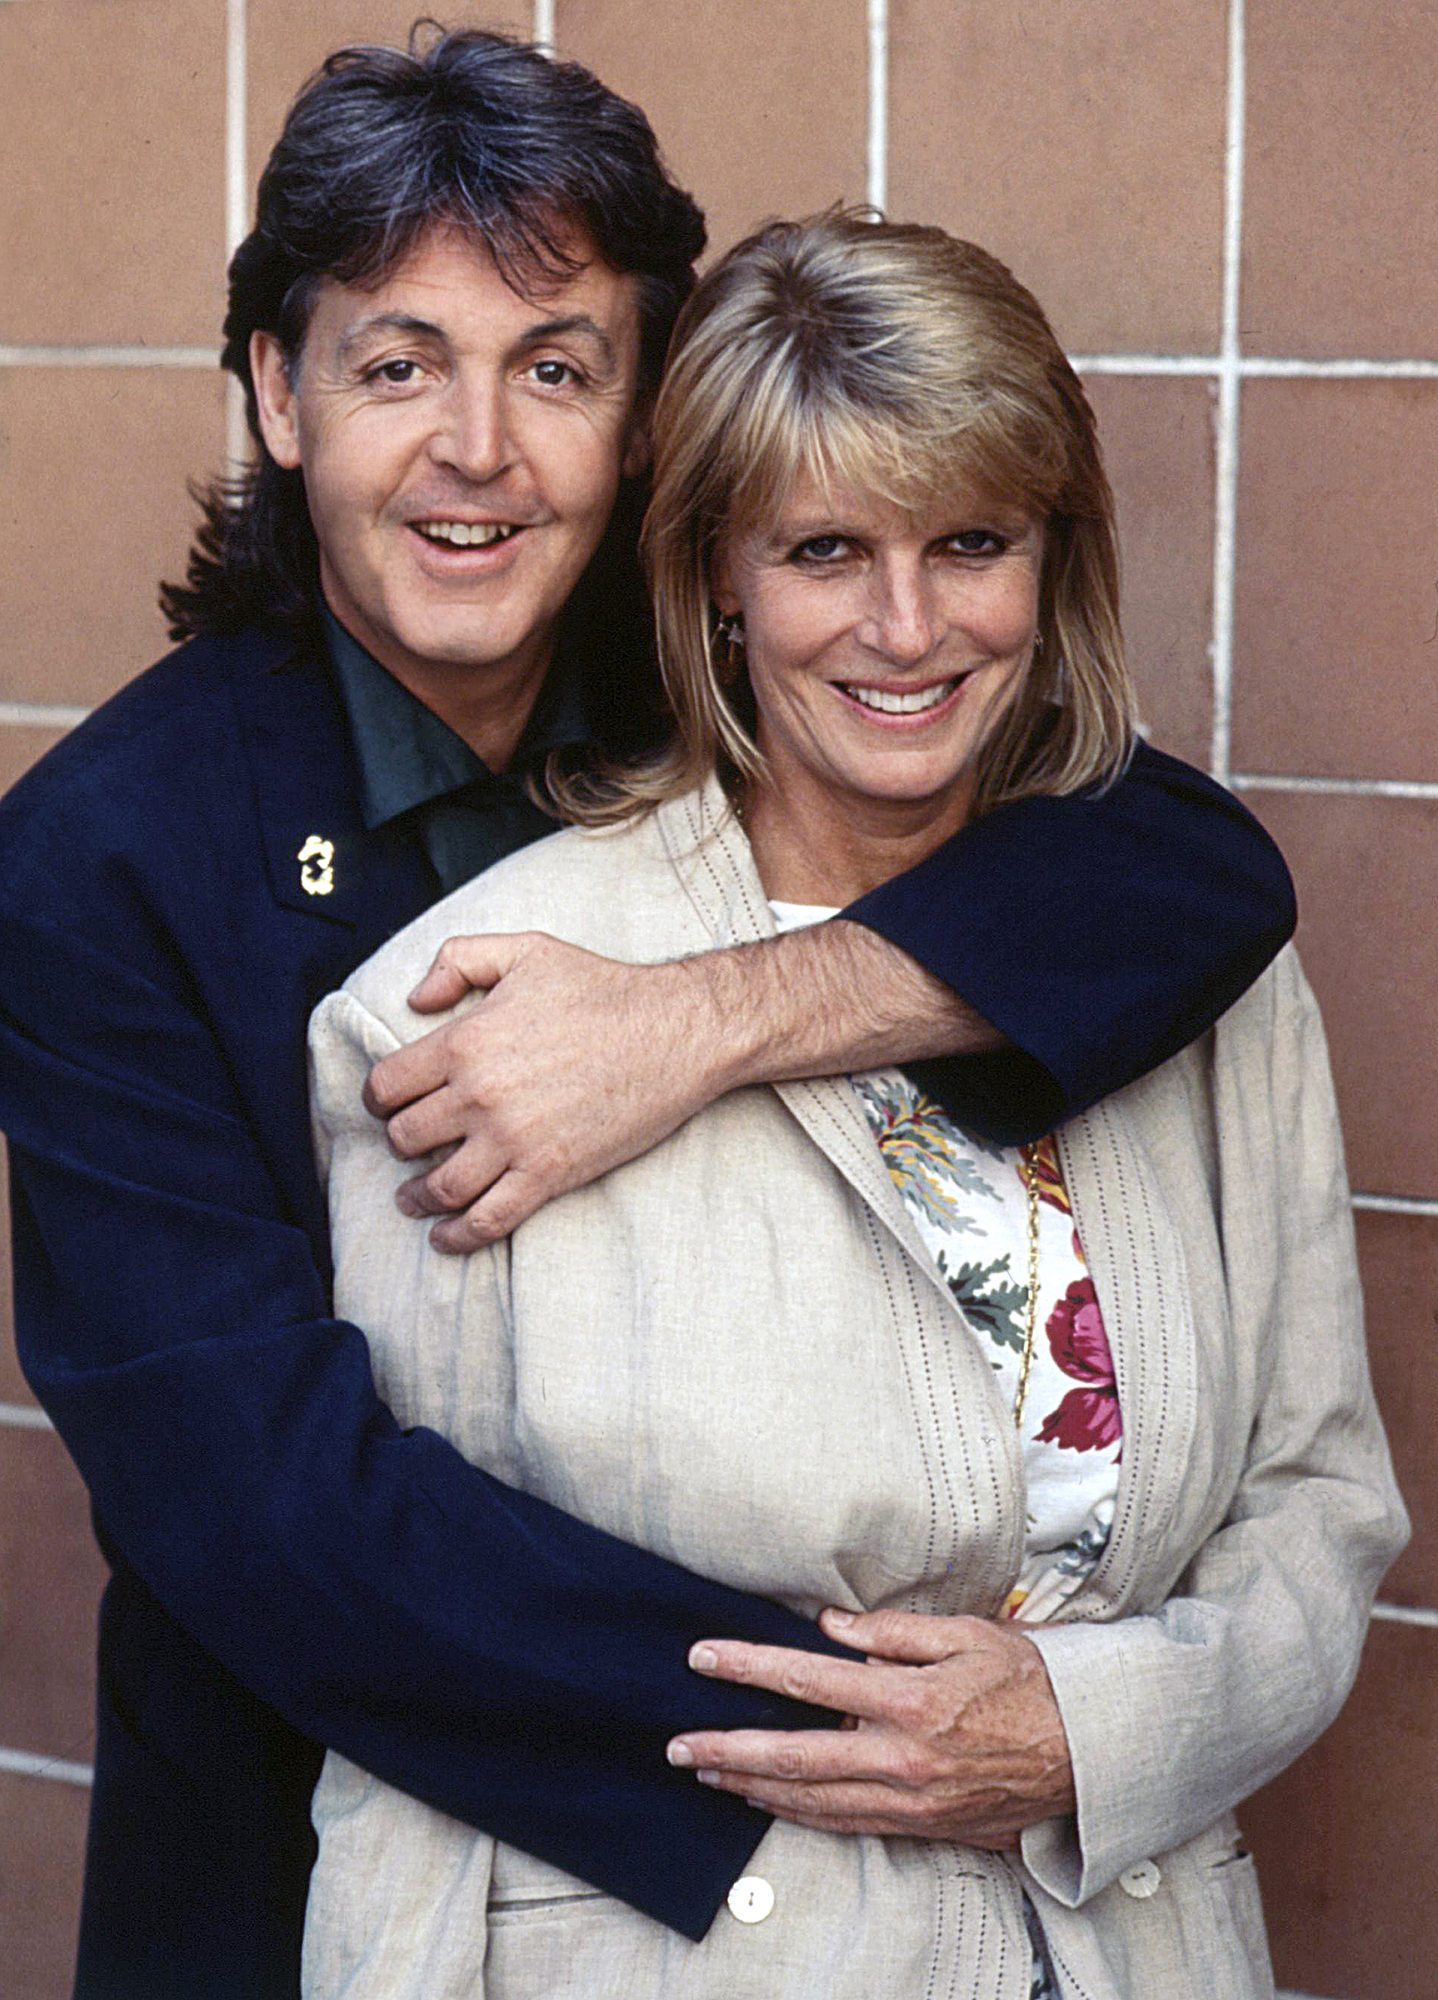 Paul McCartney hugging his wife Linda Eastman